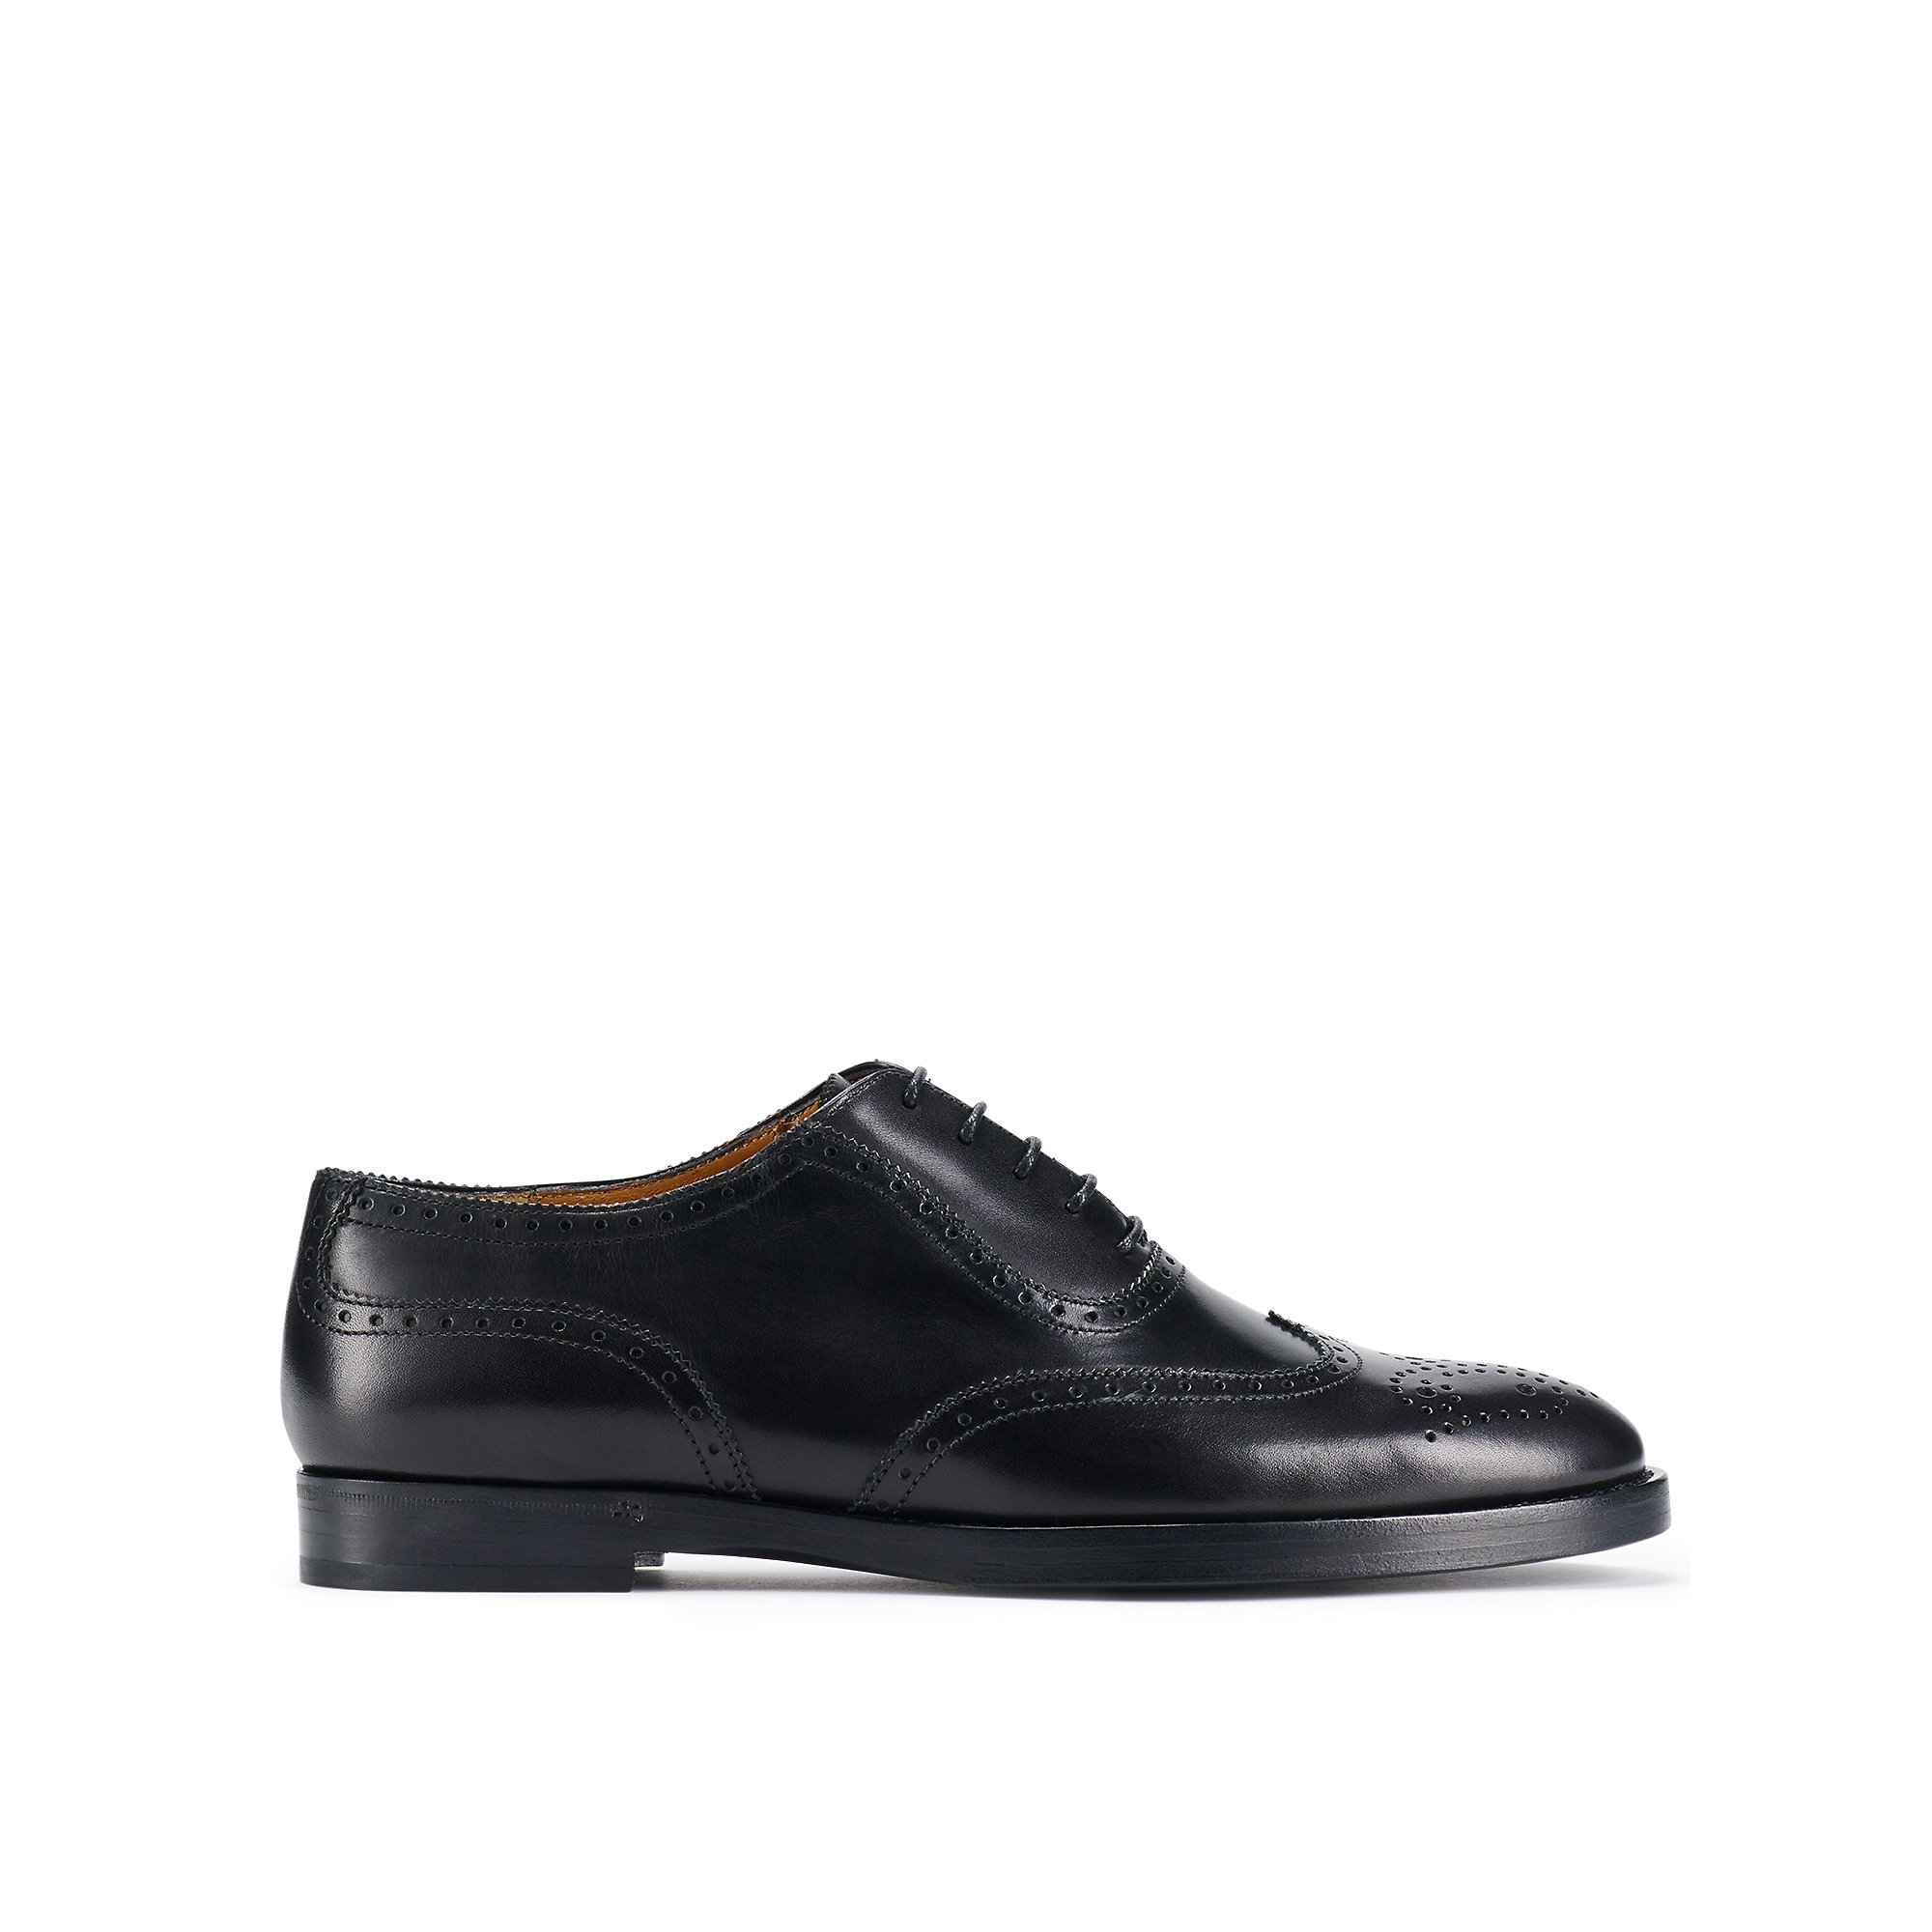 Ralph Lauren Made In Italy Womens Oxford Shoes